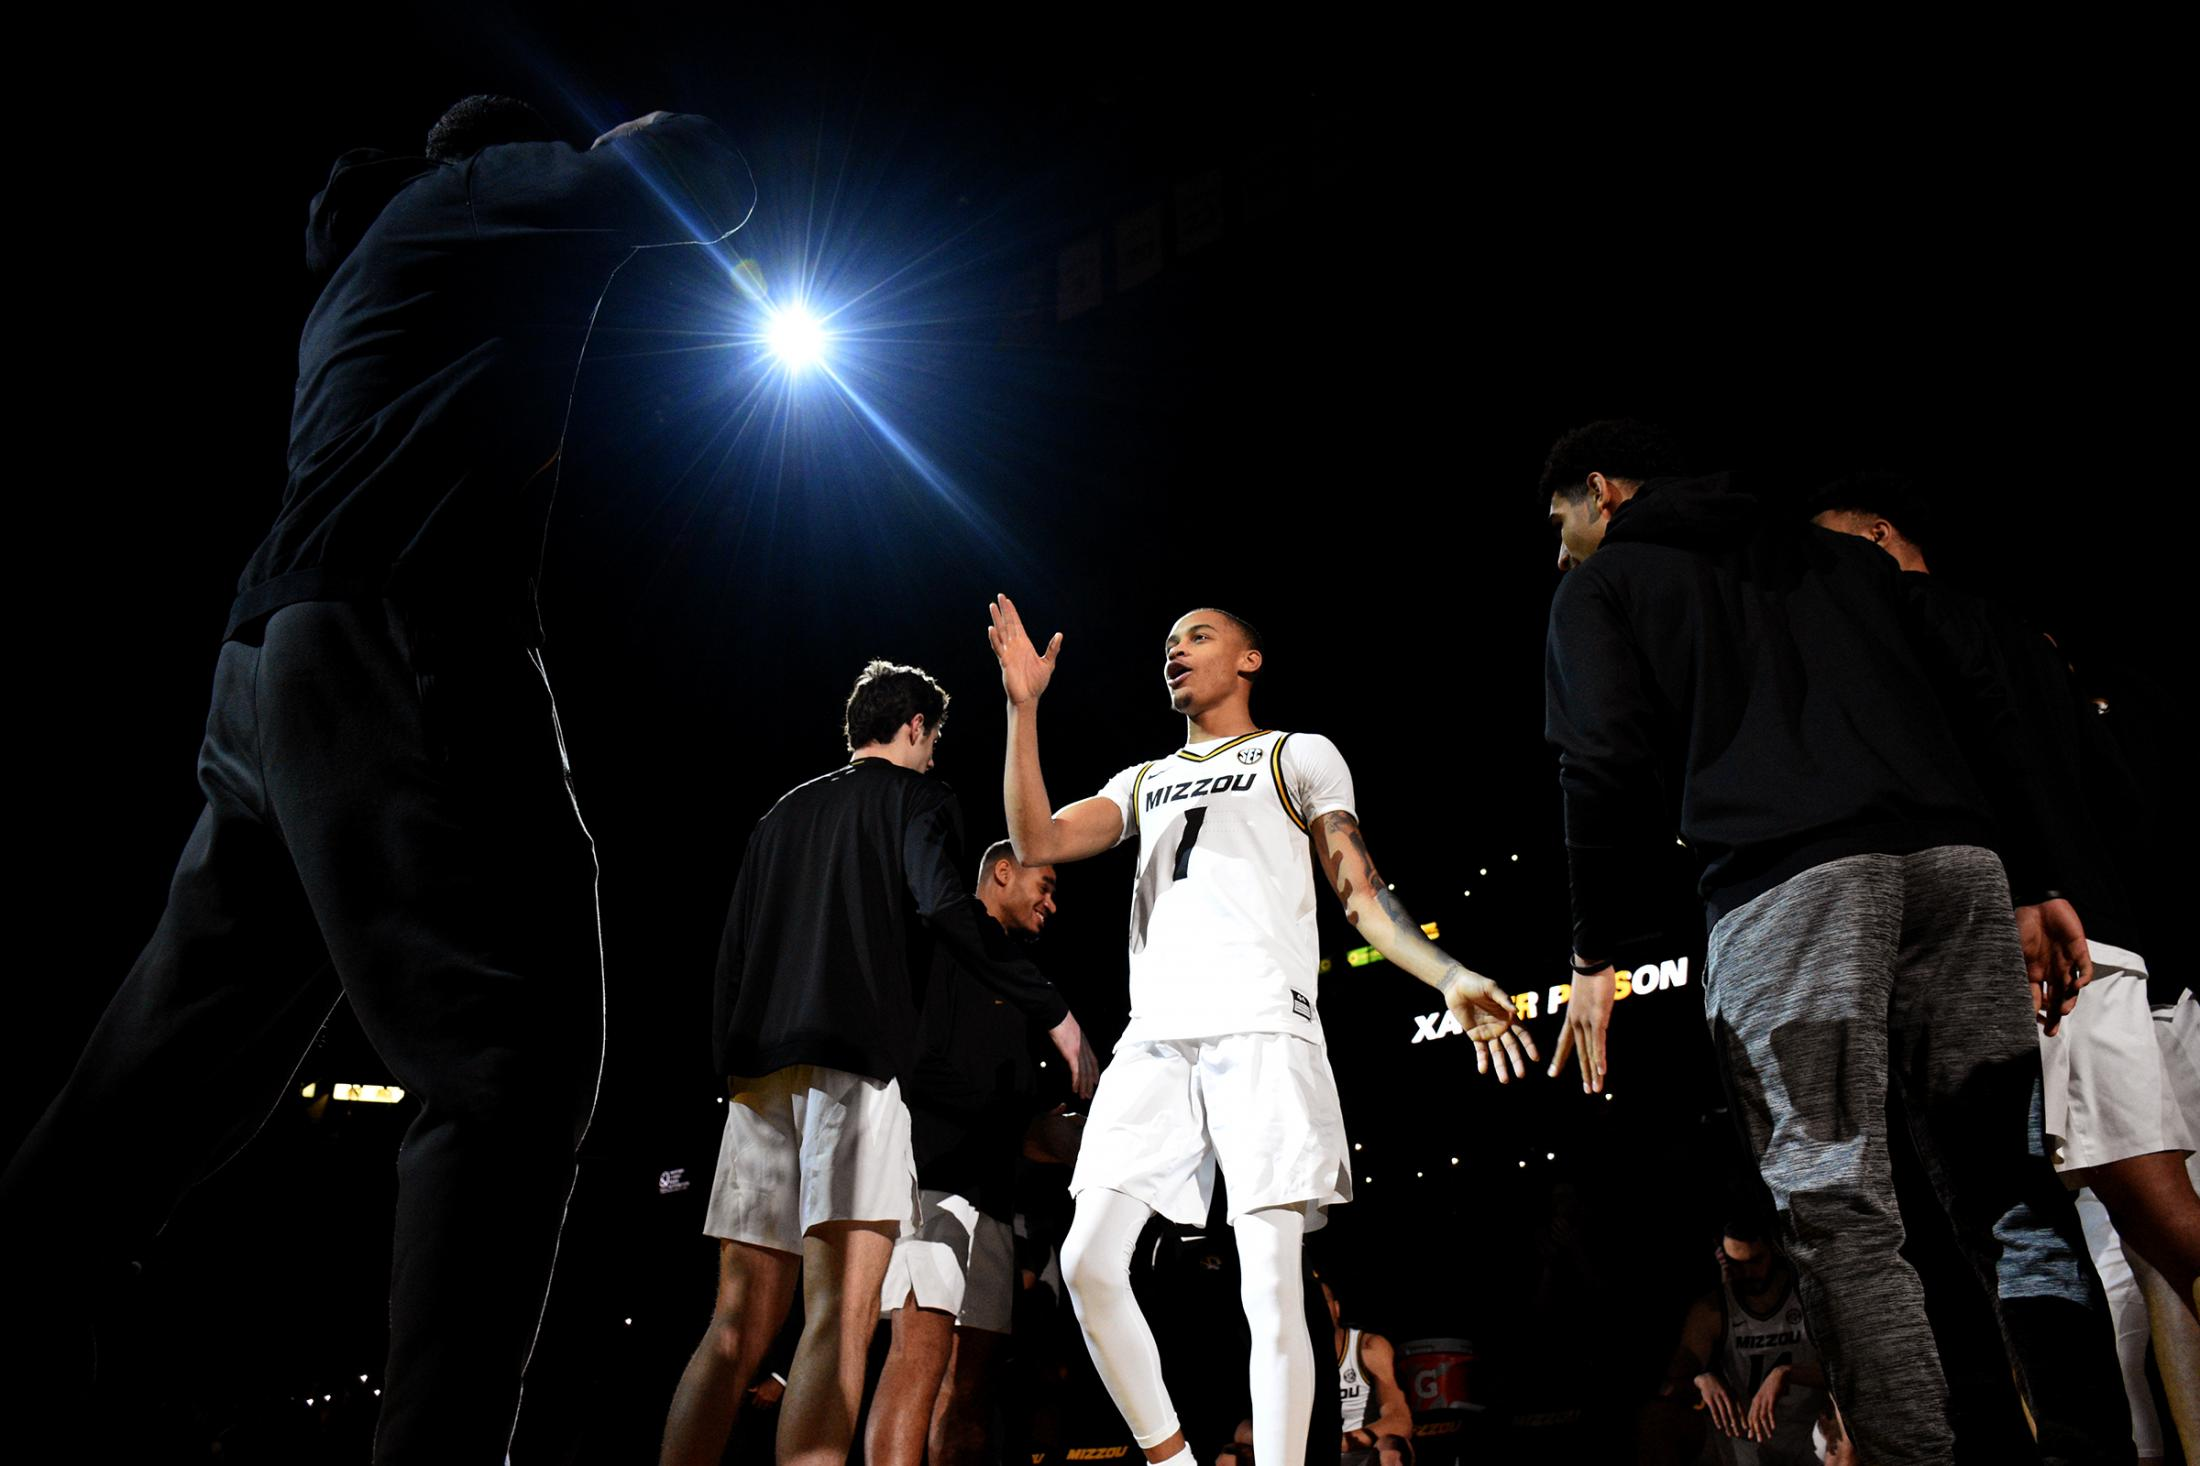 Missouri point guard Xavier Pinson walks onto the court before the Tigers game against Ole Miss on Tuesday, Feb. 18, 2020, at Mizzou Arena. Pinson had a career-high 32 points in their win, 71-68.